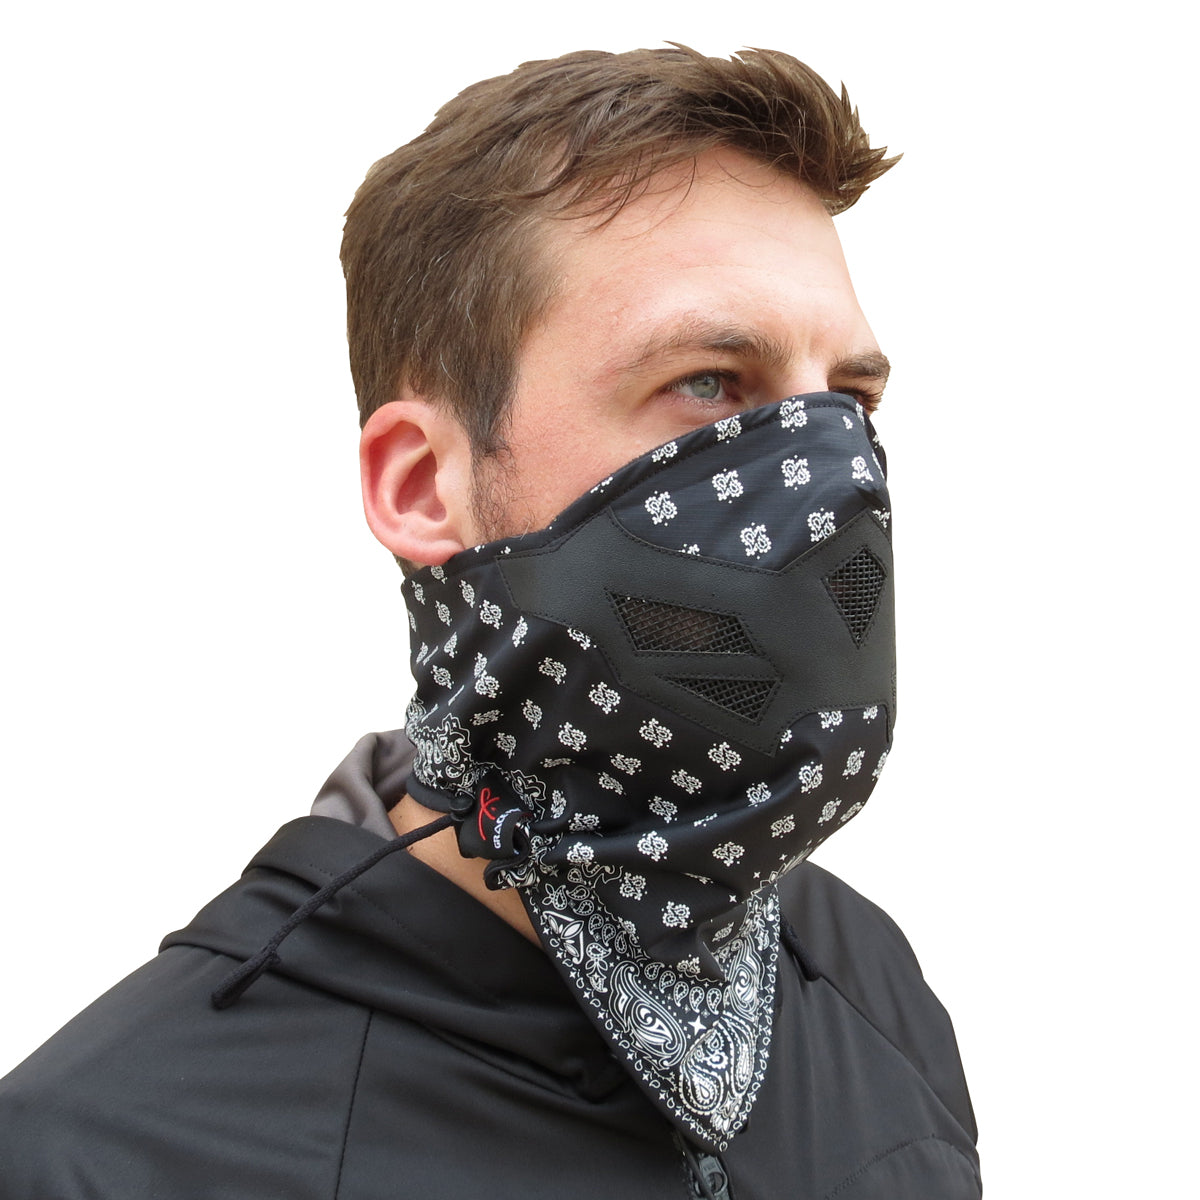 Raider Mask - Black and White Bandana